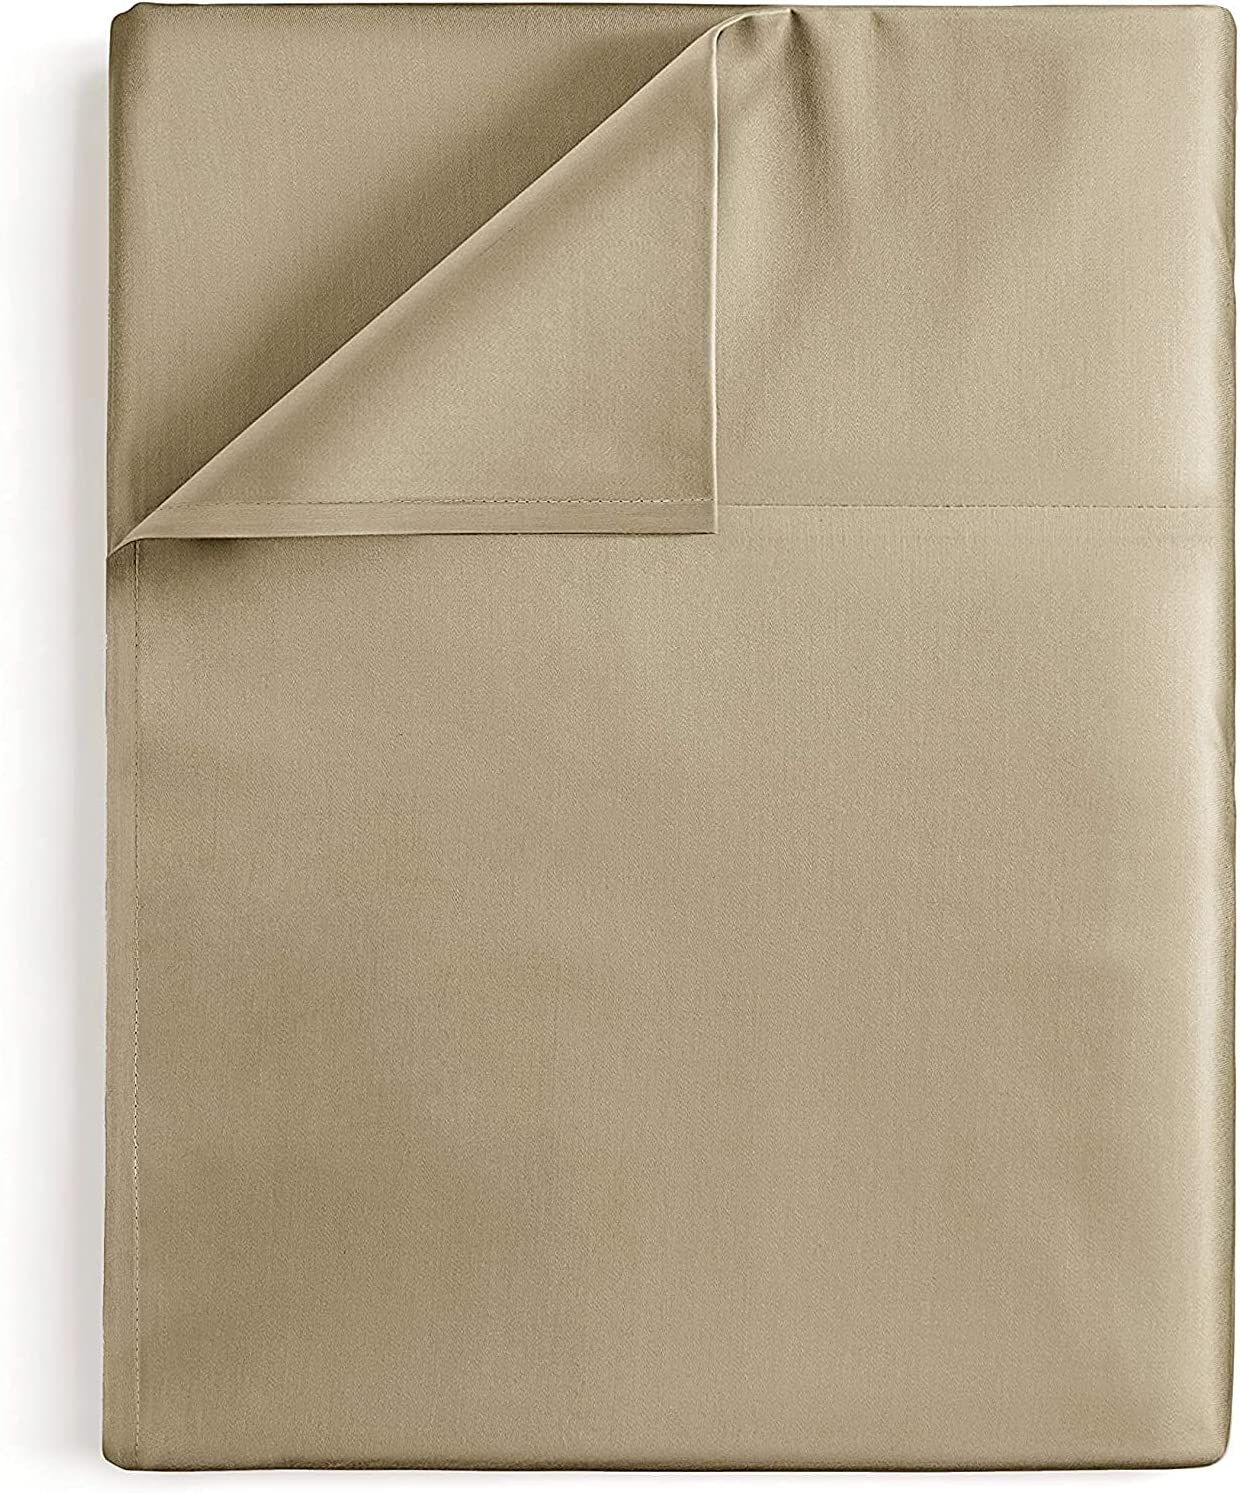 100% Ranking Free shipping on posting reviews TOP7 Egyptian Cotton Flat Sheet 1000 K Count Thread Sheets Cal